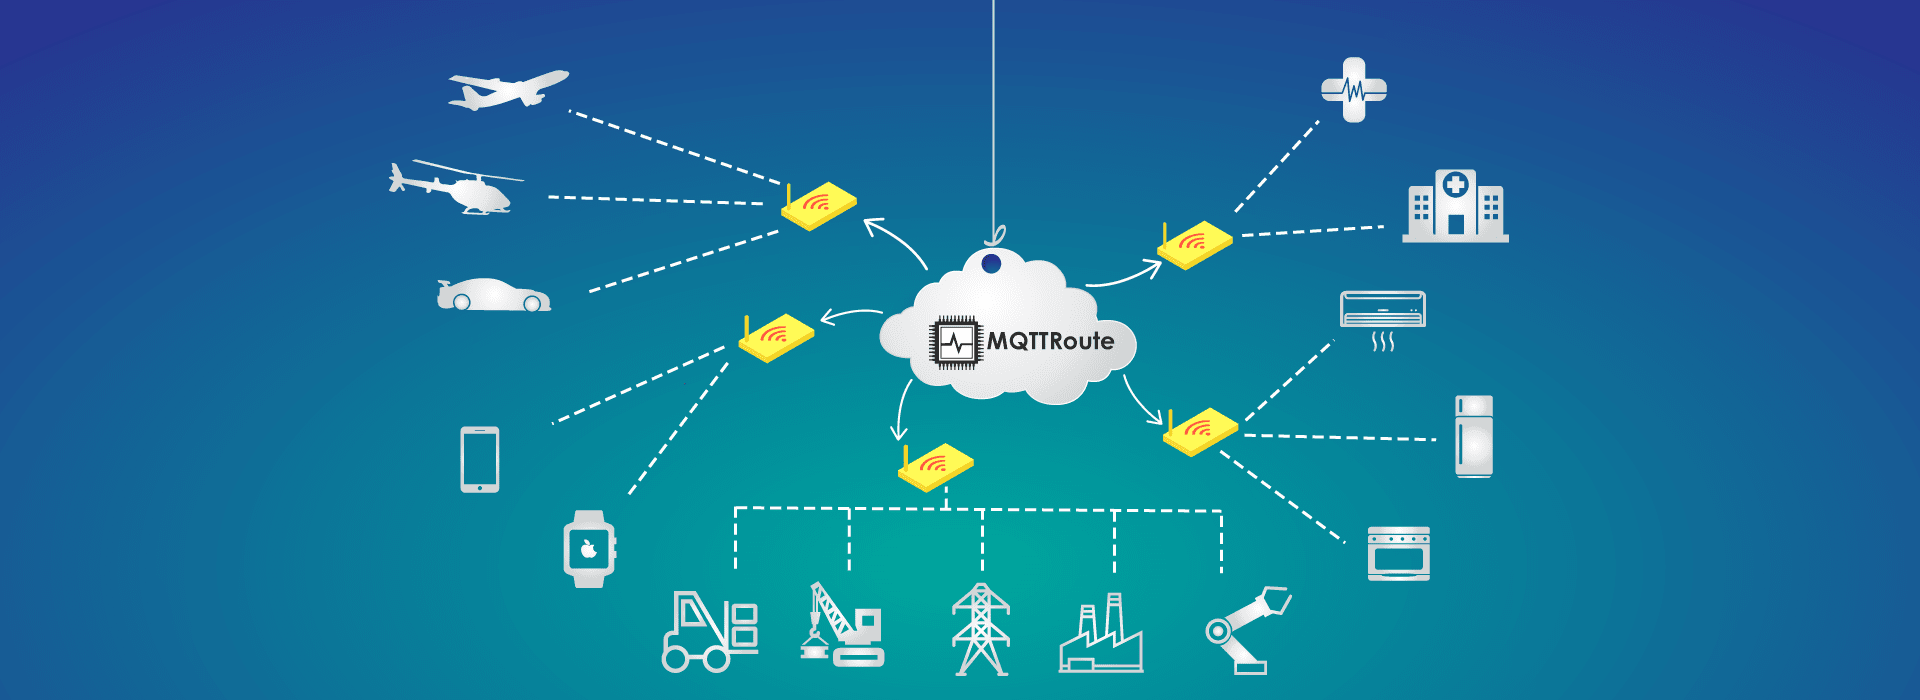 Fight Industrial Data Security Breaks with Secure Enterprise MQTT Broker